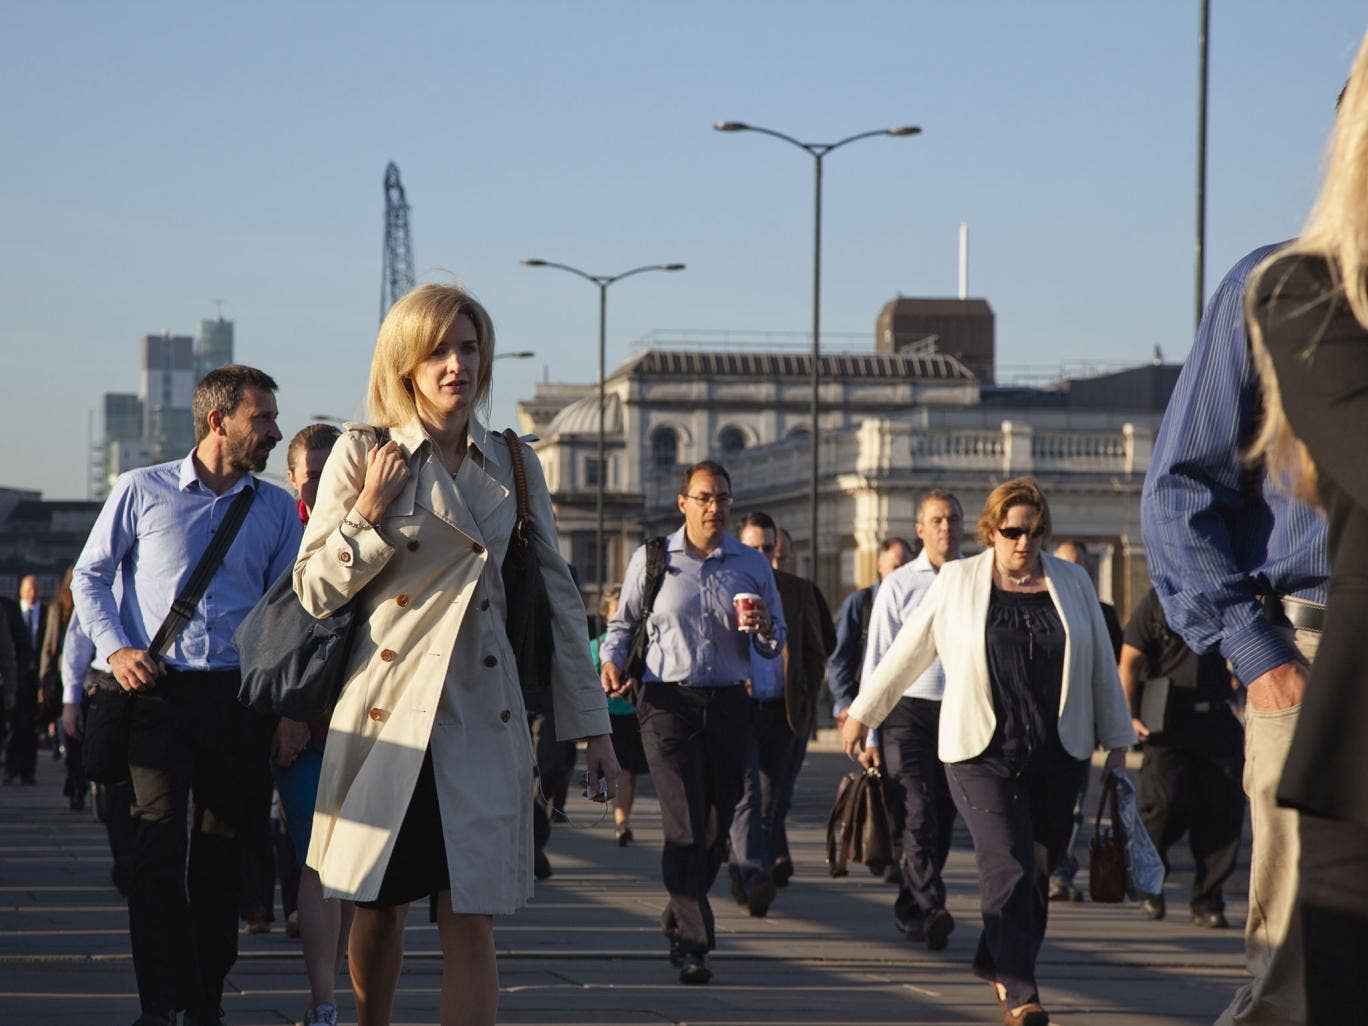 A fifth of women surveyed said managers failed to promote them